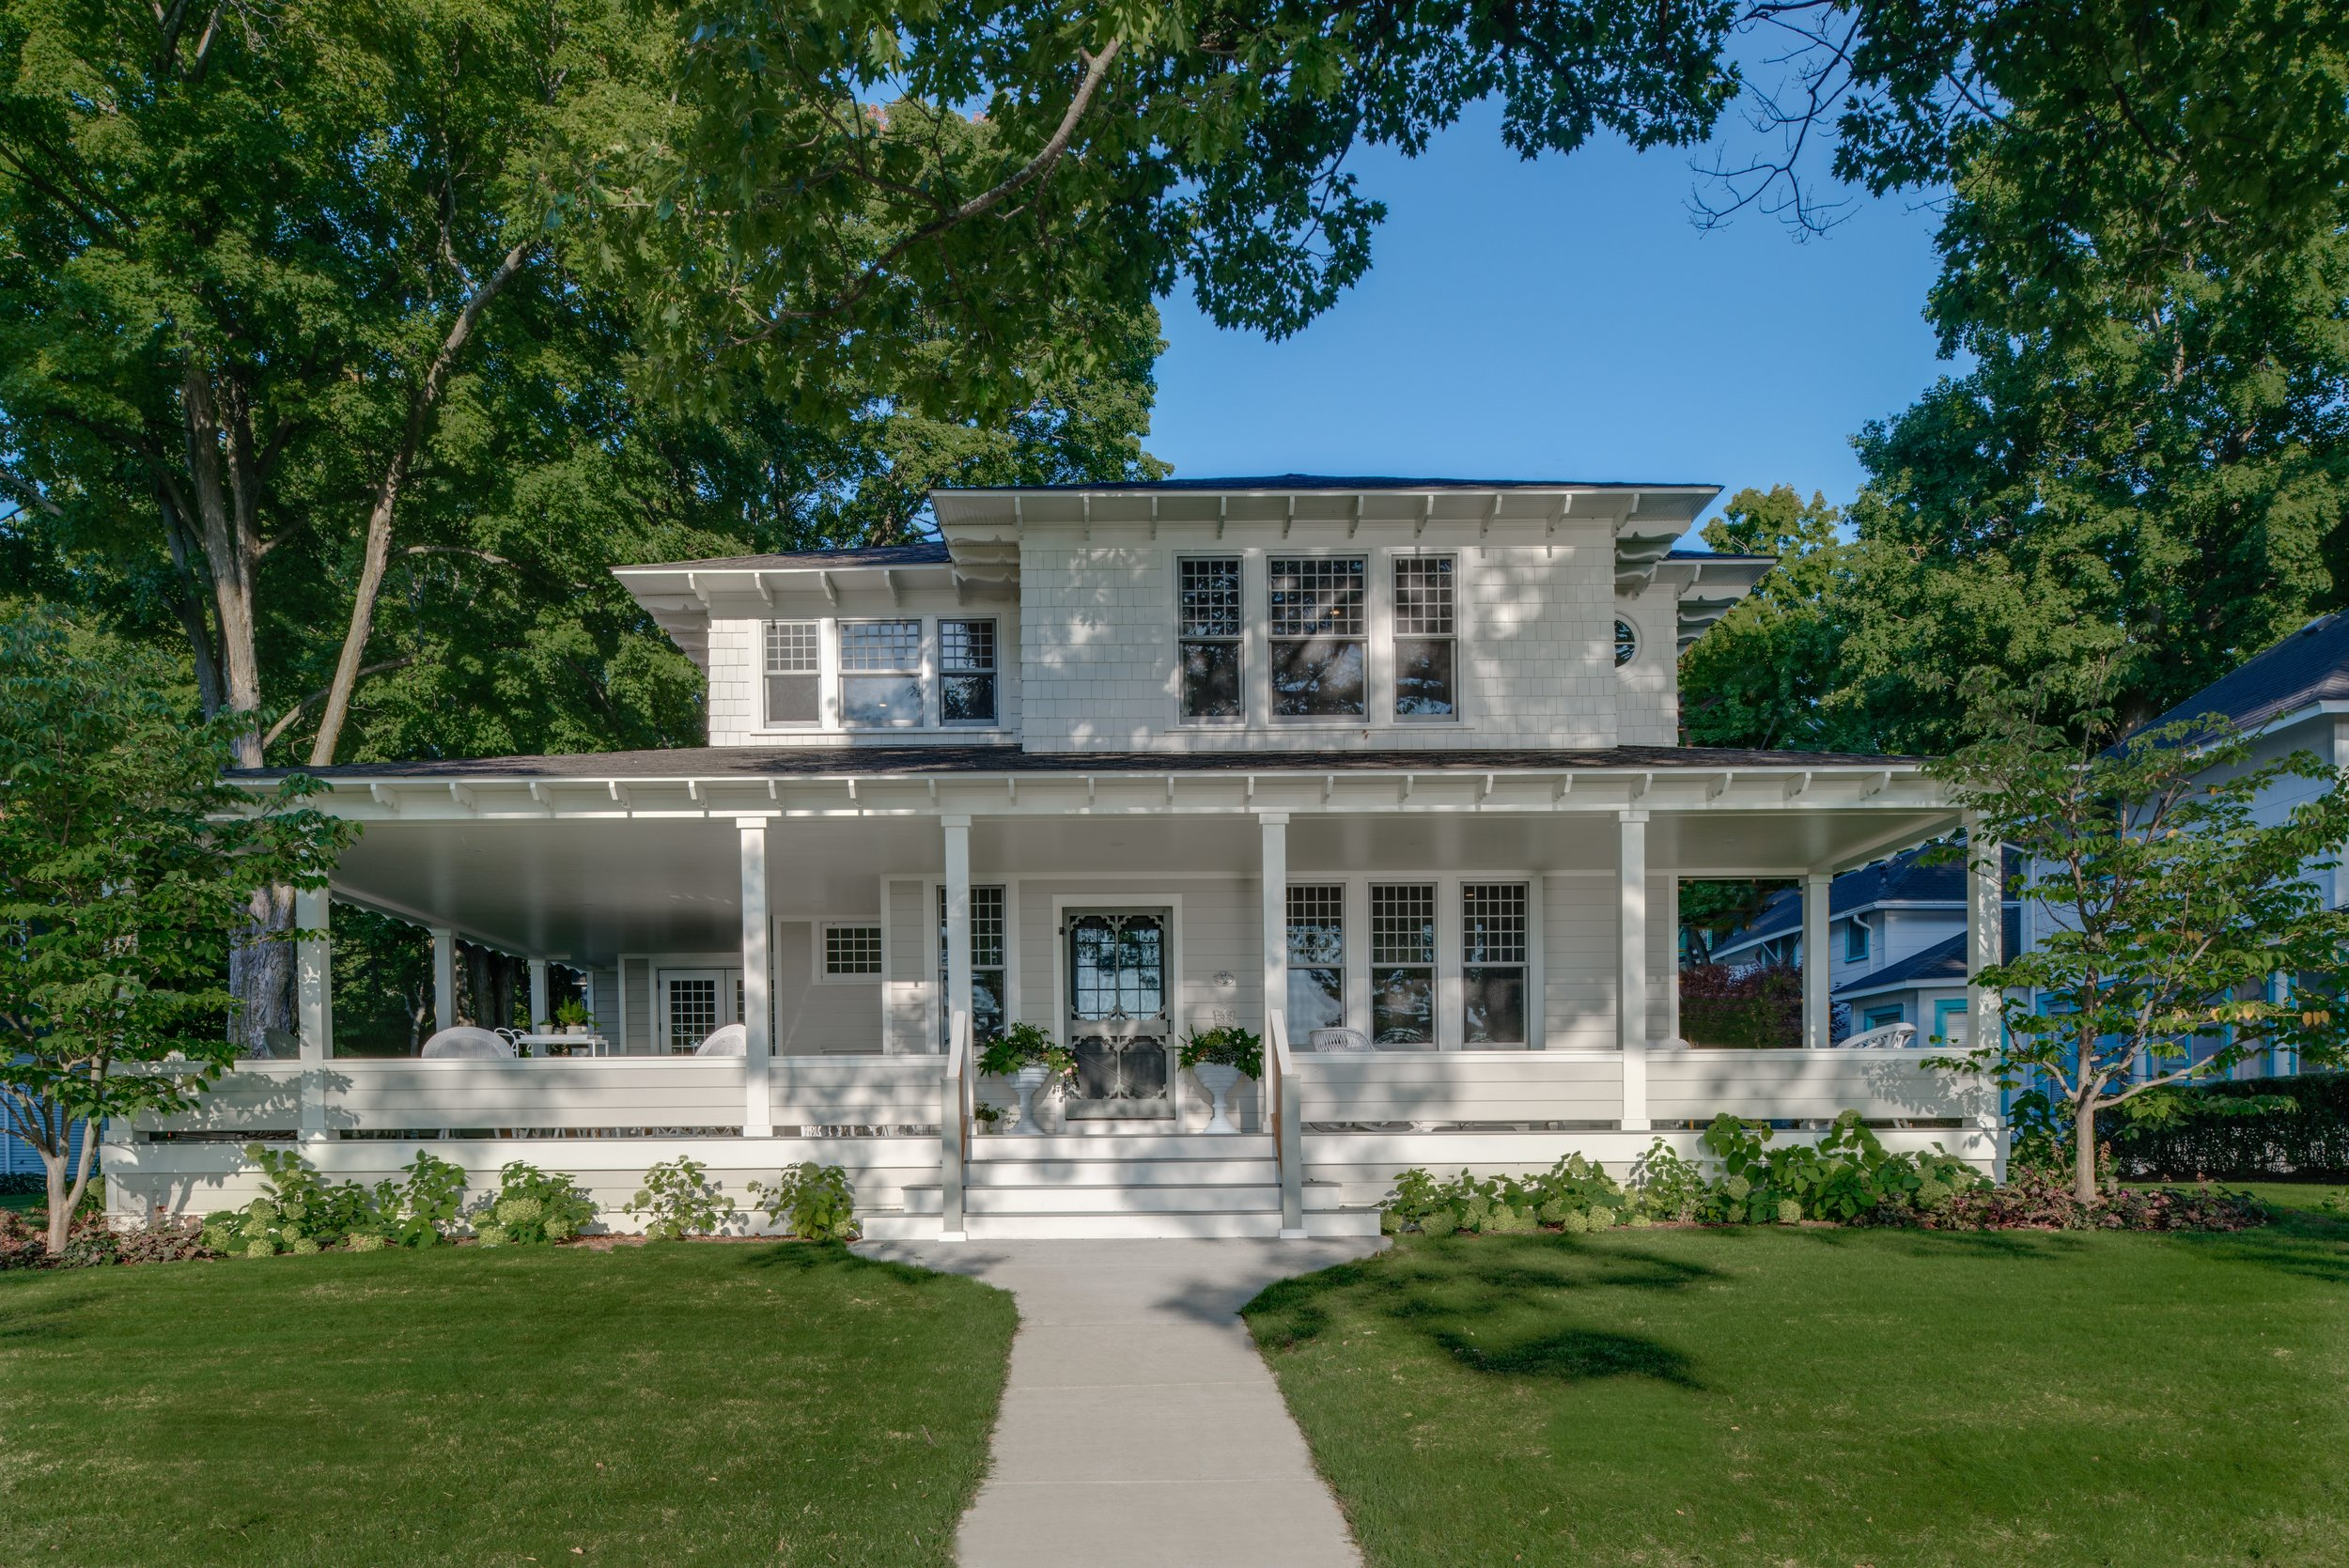 Michigan gated community custom home and remodeling portfolio by the best construction builders, Birchwood Construction Company.